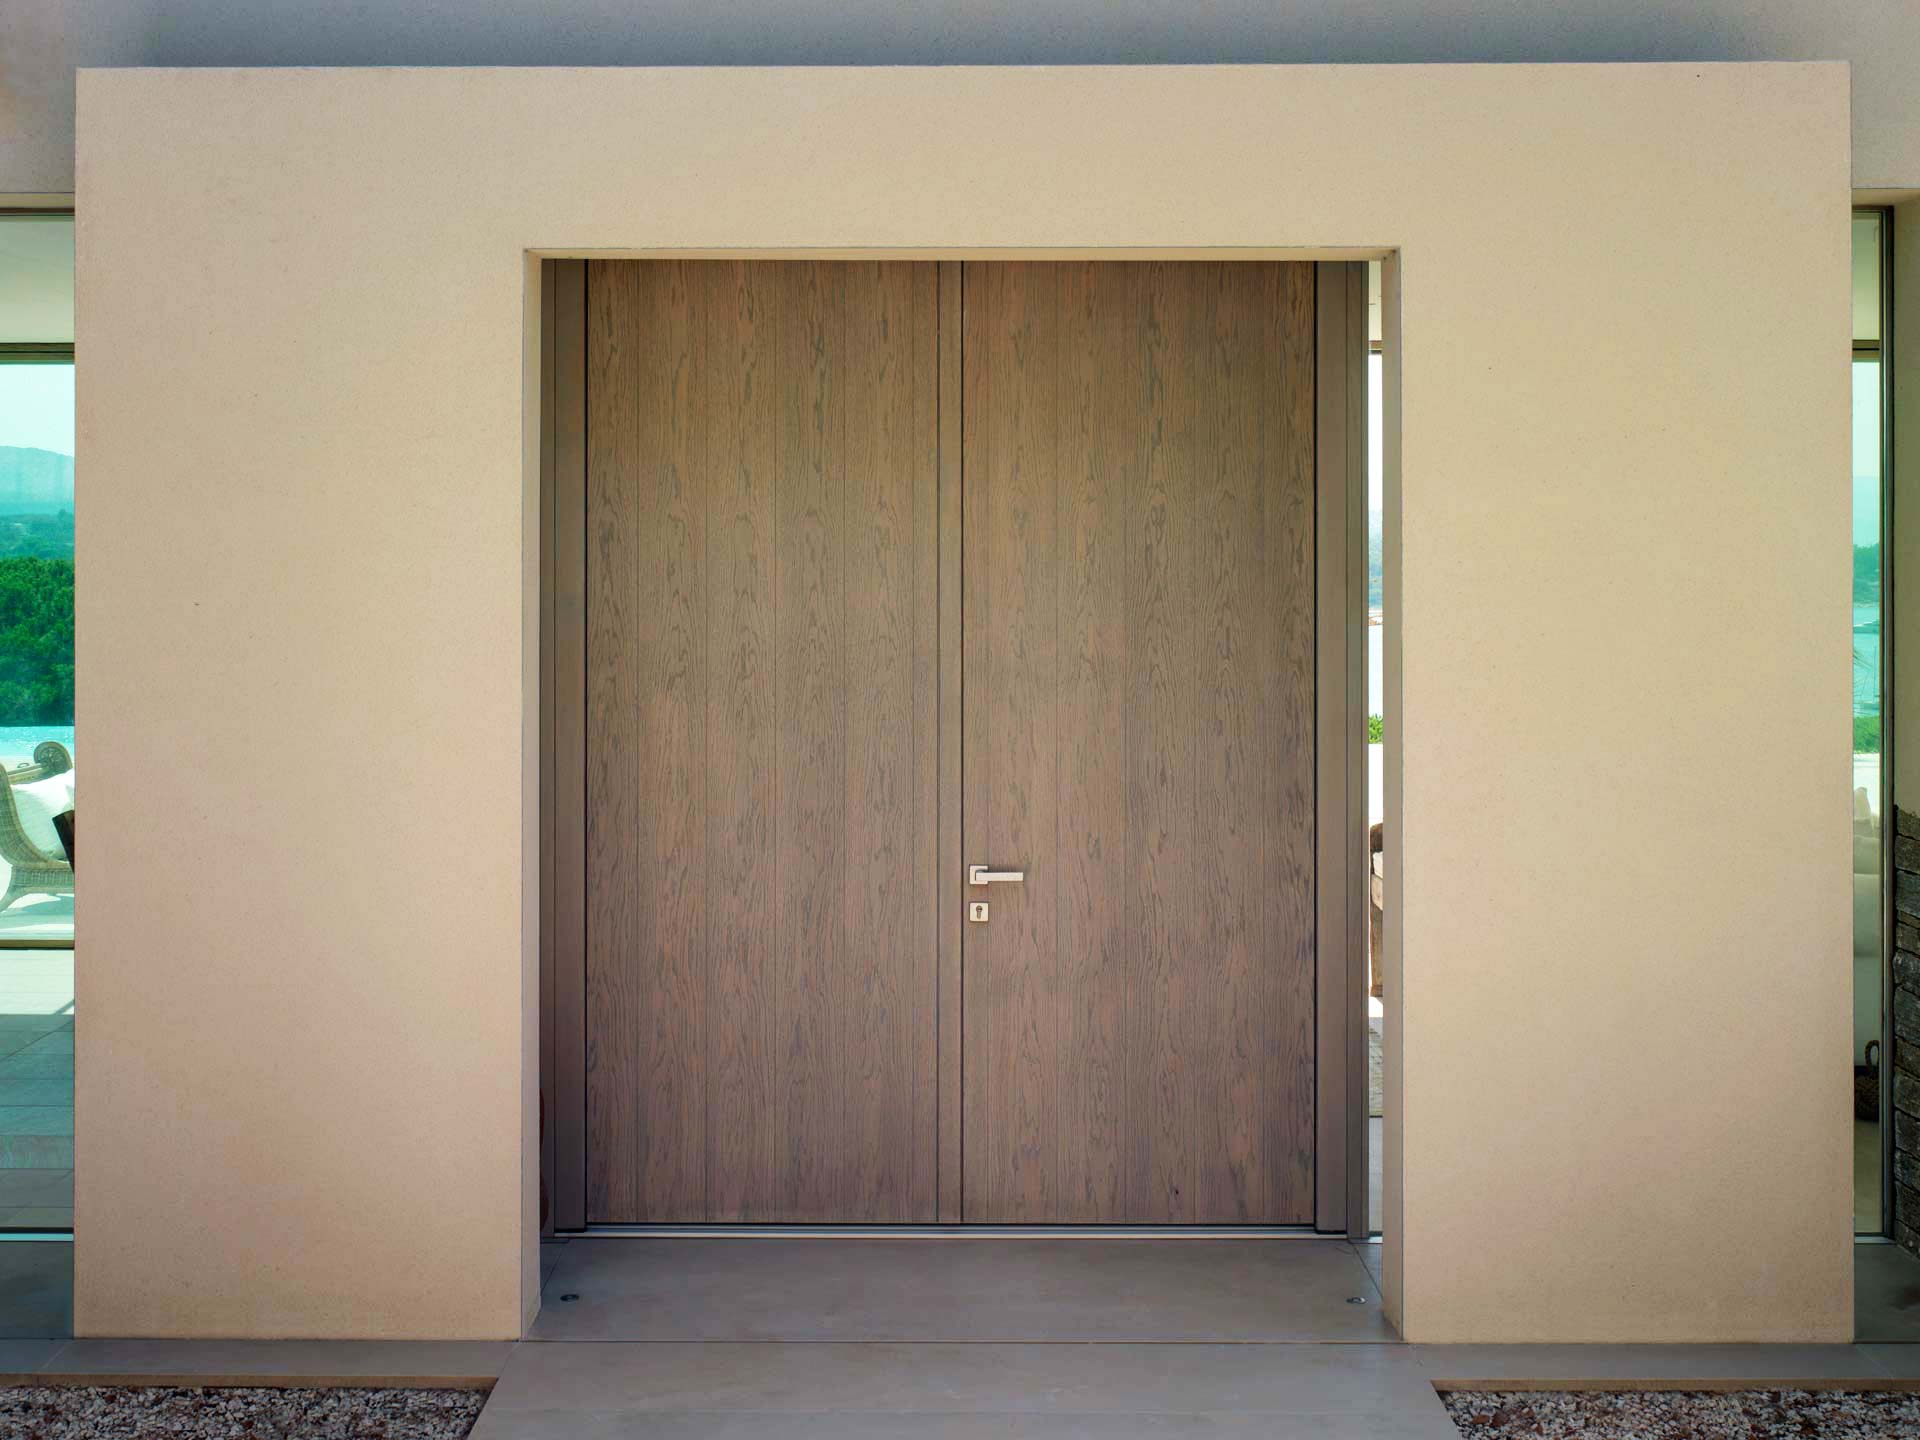 Entrance doors, image four